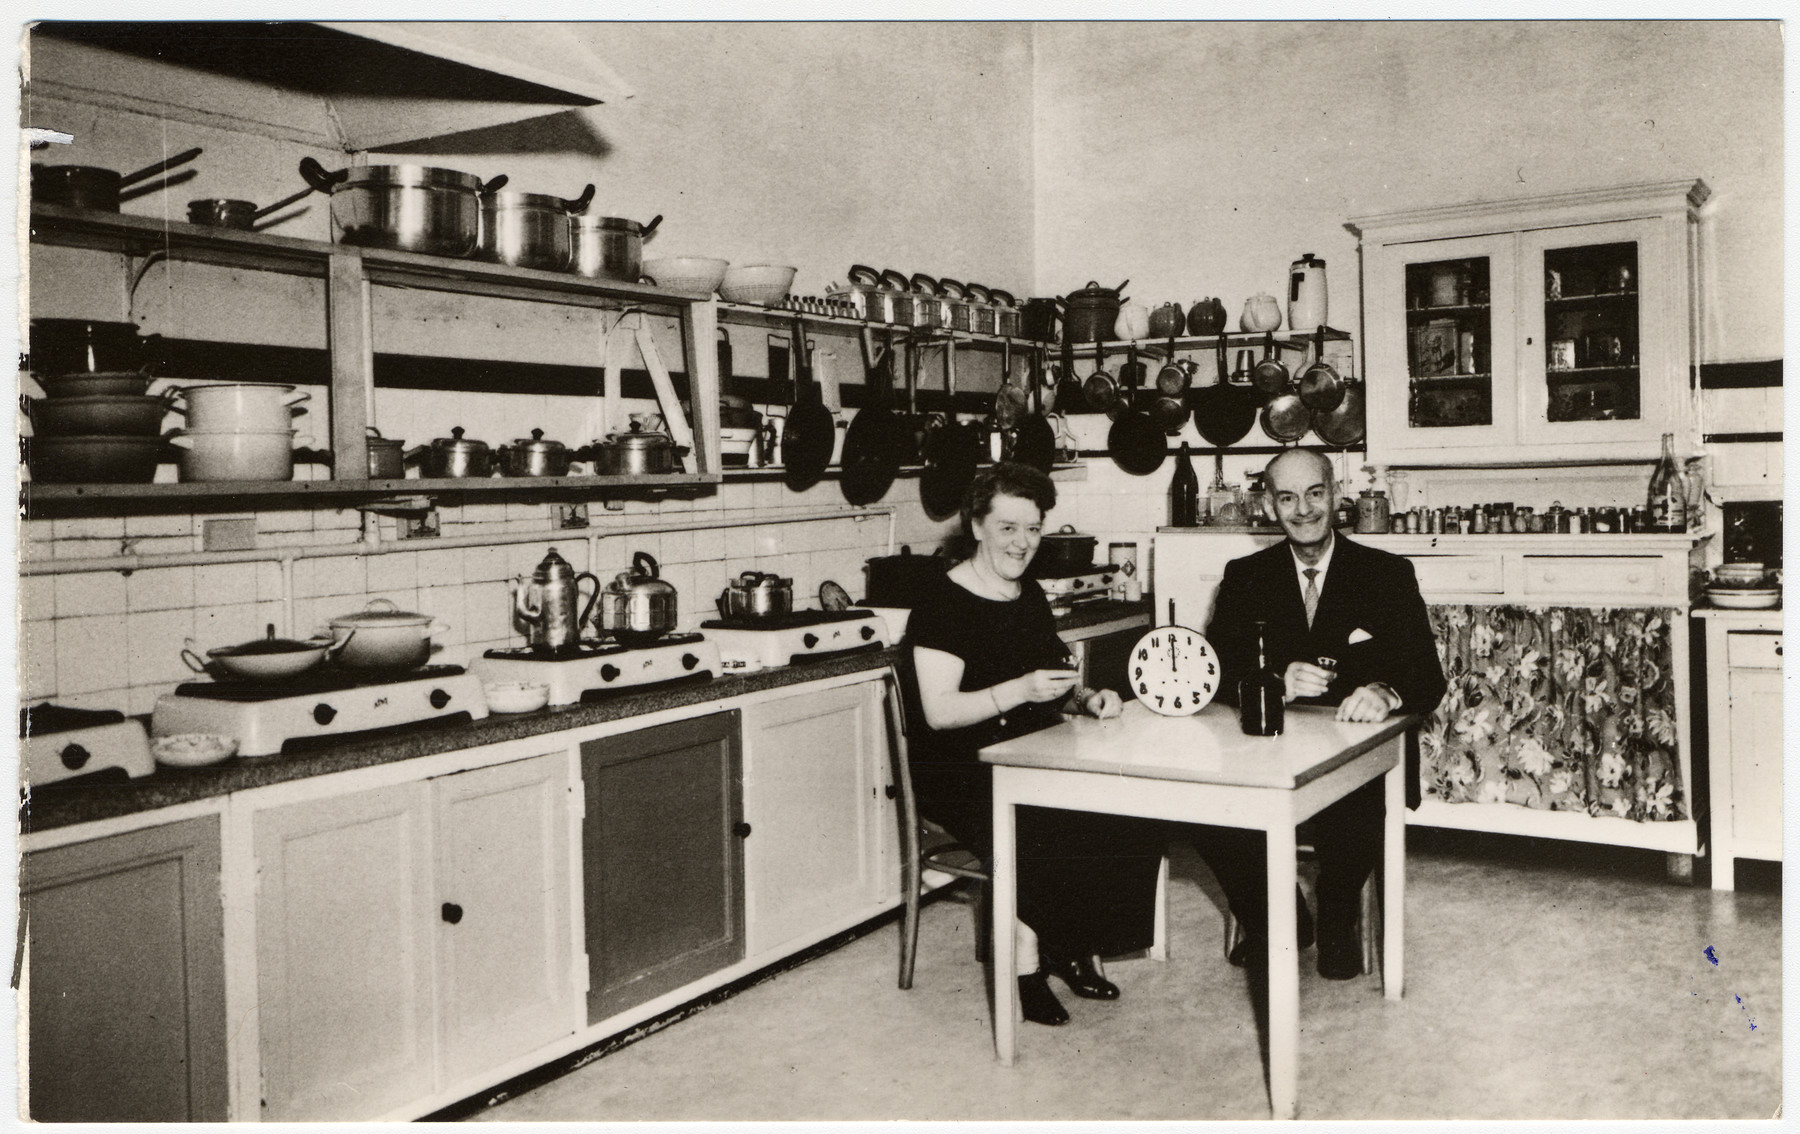 Simon and Elvire Mendels sit in the kitchen of the Hotel de Aardbol in Amsterdam.    Elvire not Jewish and kept working as the owner of the hotel during WWII. She and Simon divorced at the beginning of the war to protect her. He spent the war in hiding in the hotel itself. They remarried after the war.